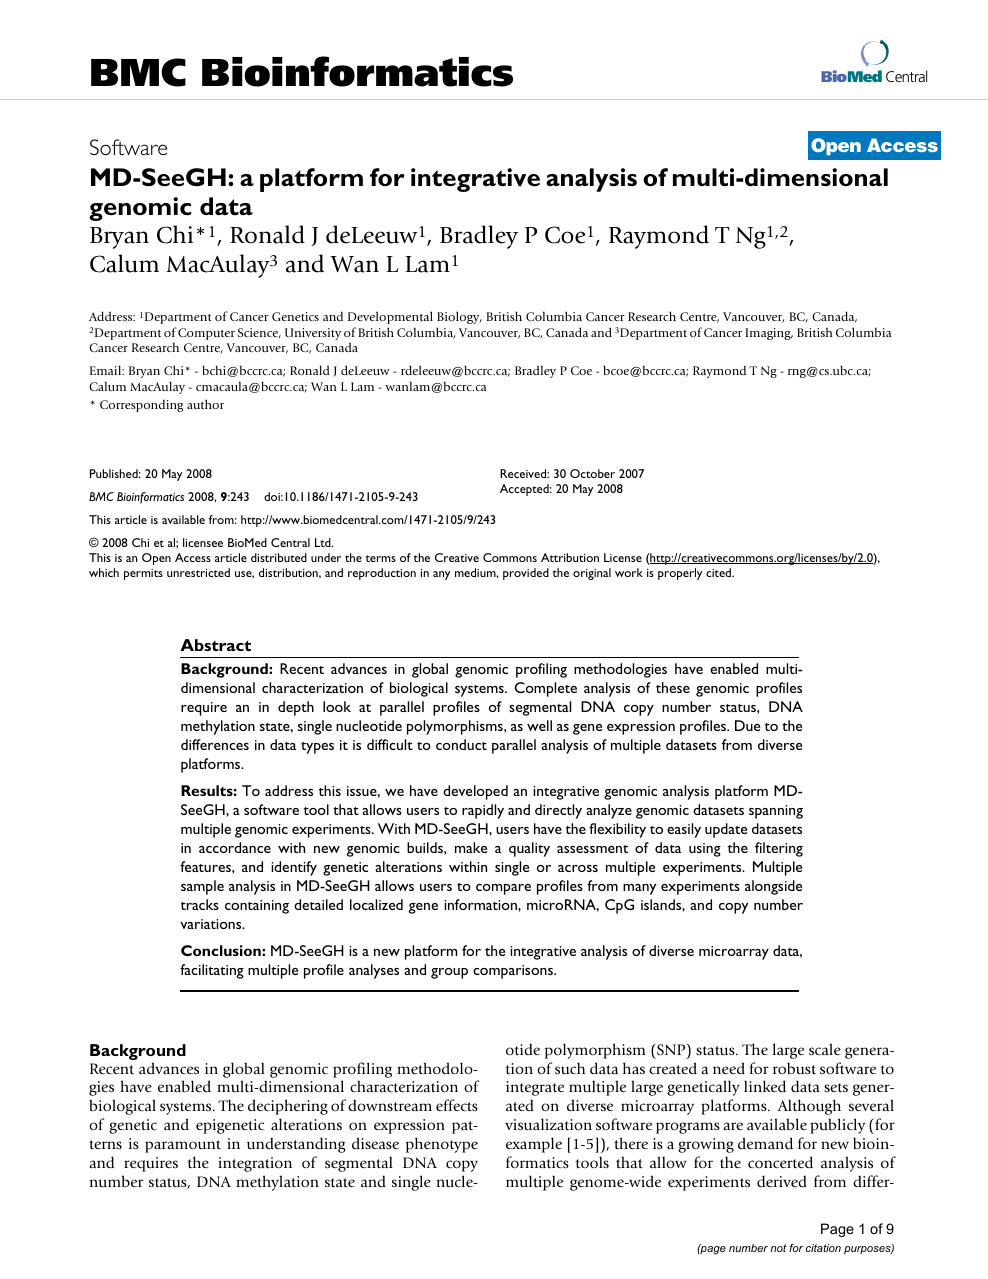 MD-SeeGH: a platform for integrative analysis of multi-dimensional